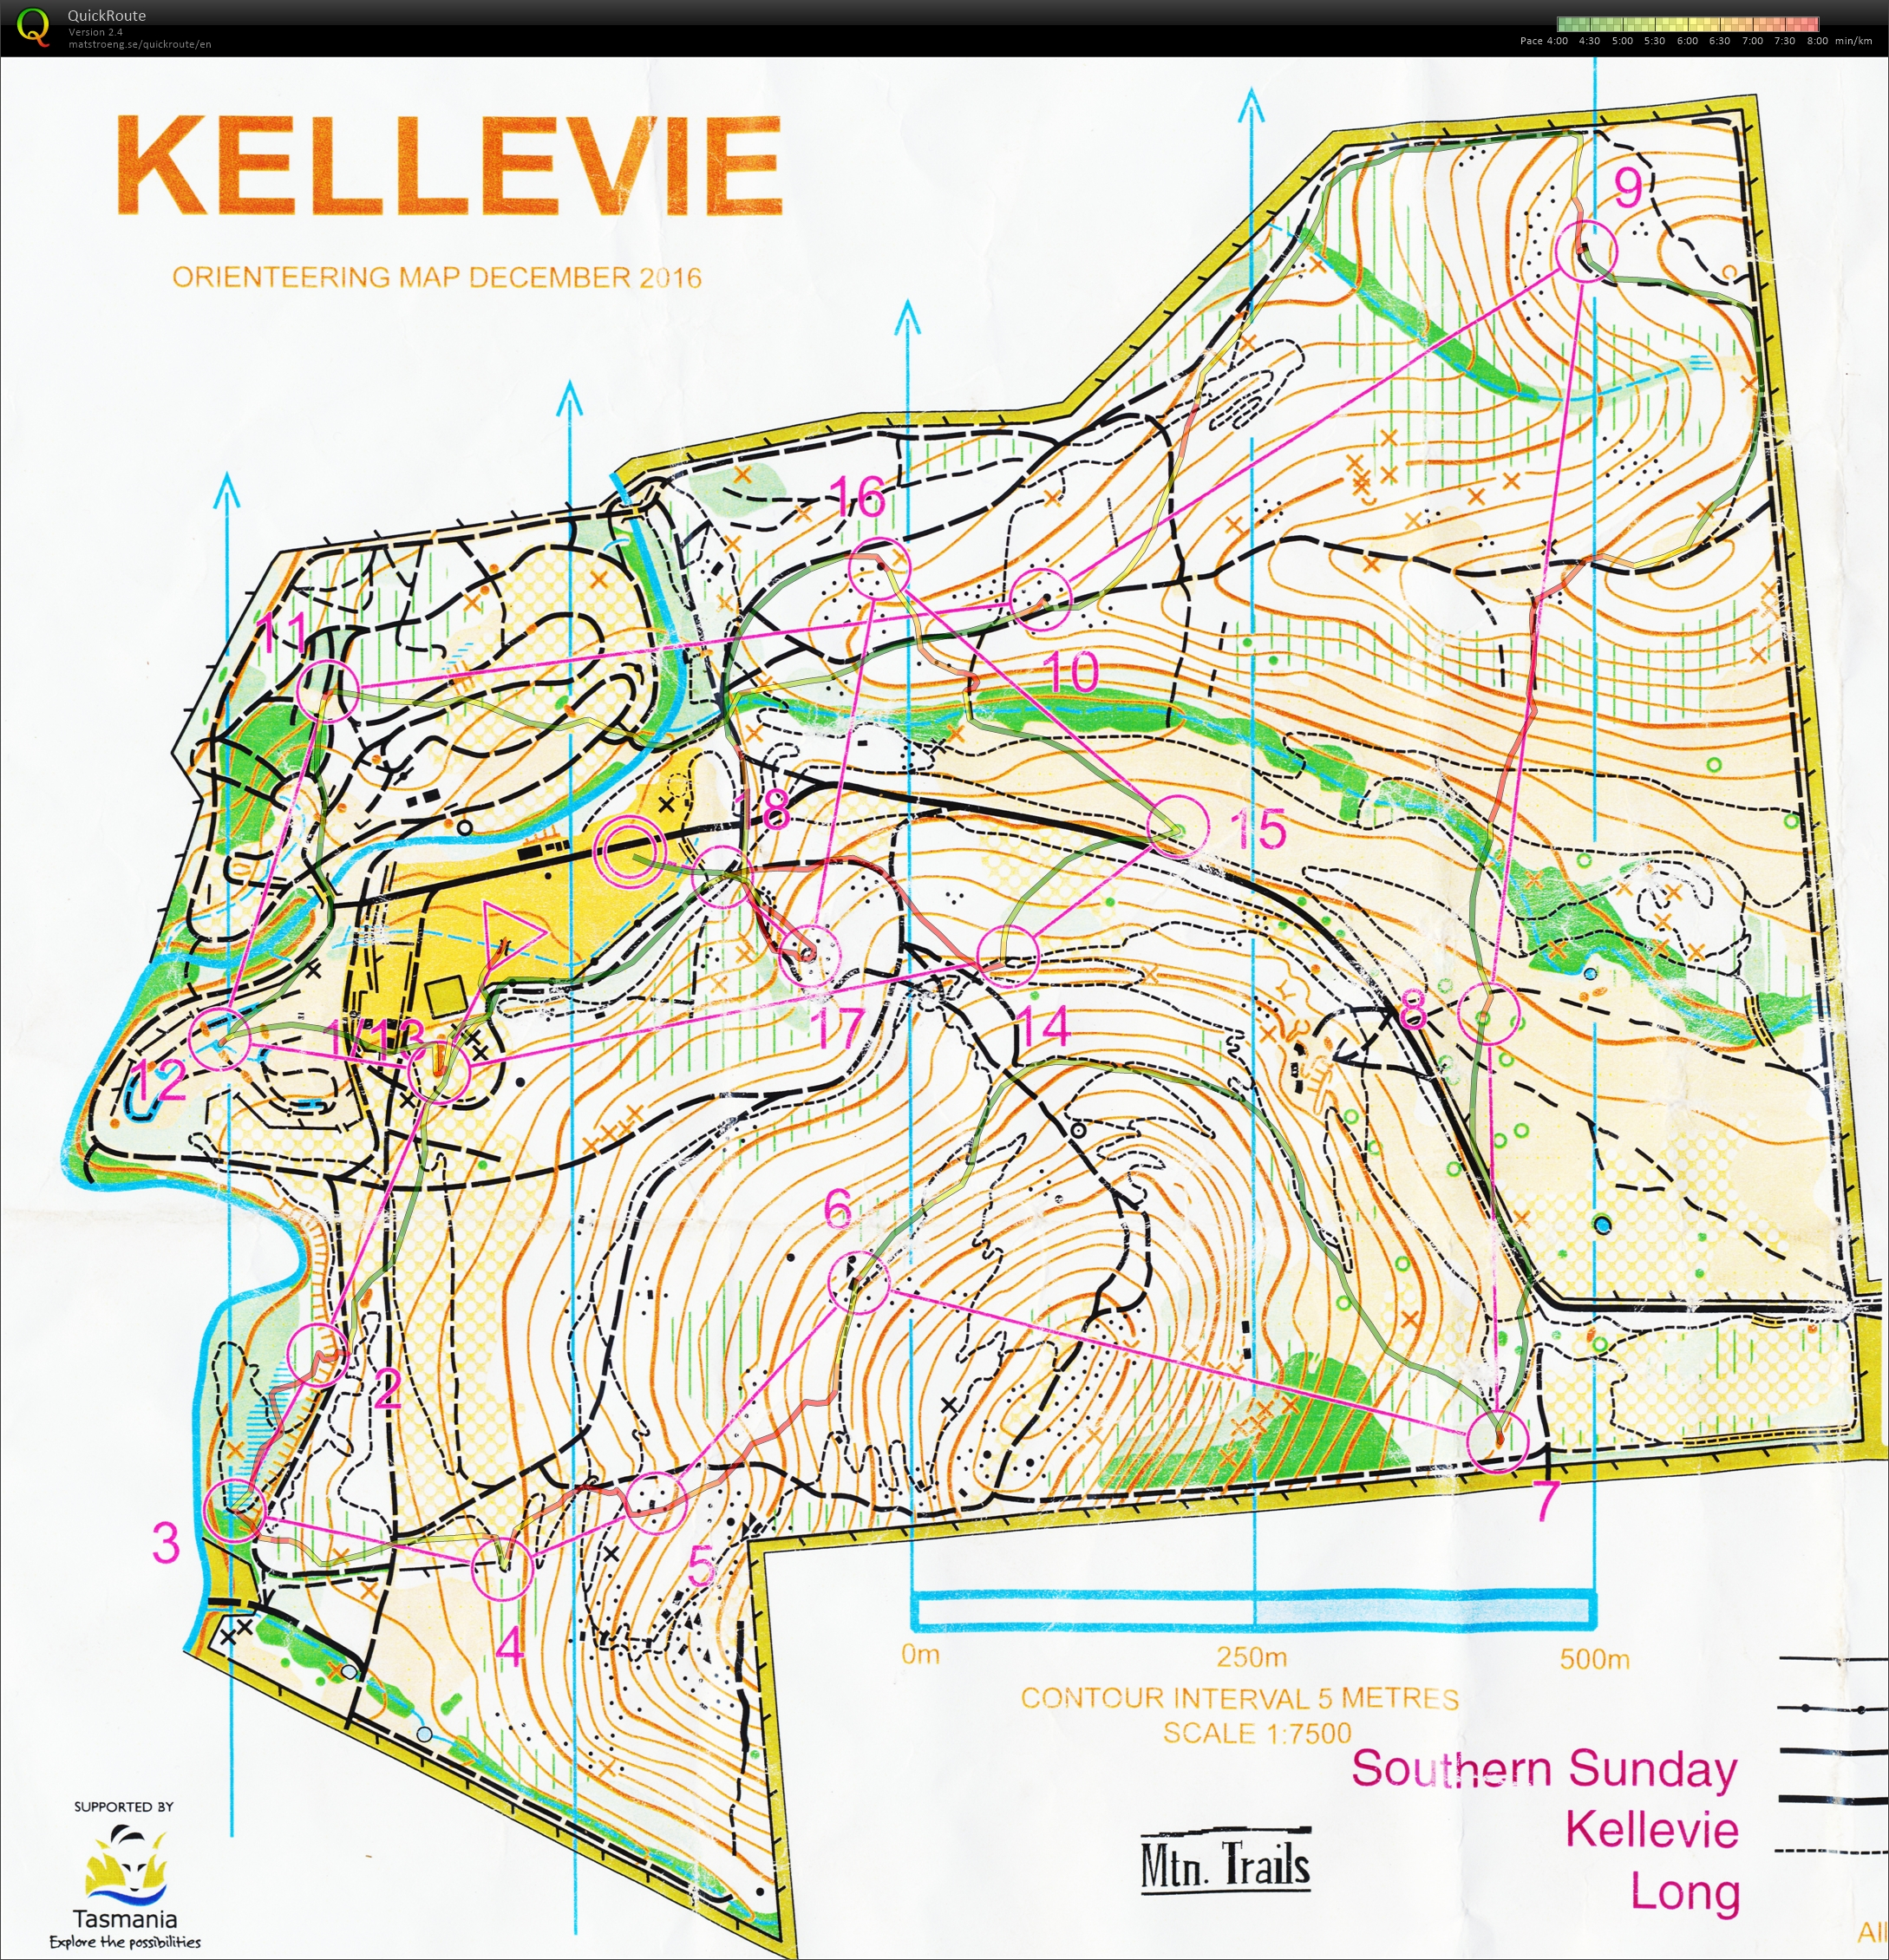 Kellevie Sunday Local (15/10/2017)